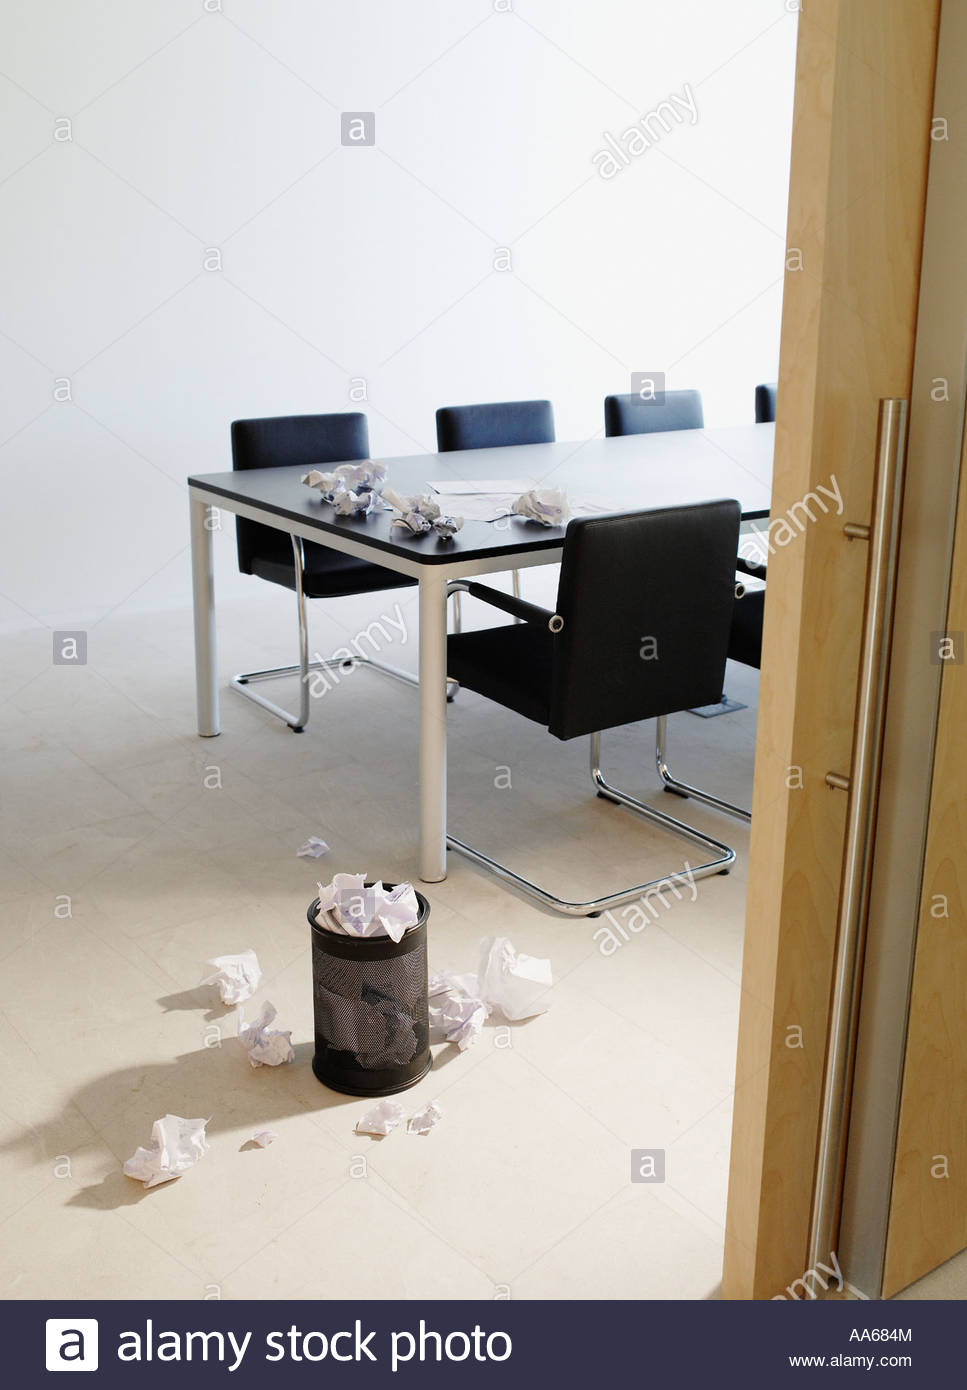 Empty boardroom littered with crumpled papers - Stock Image